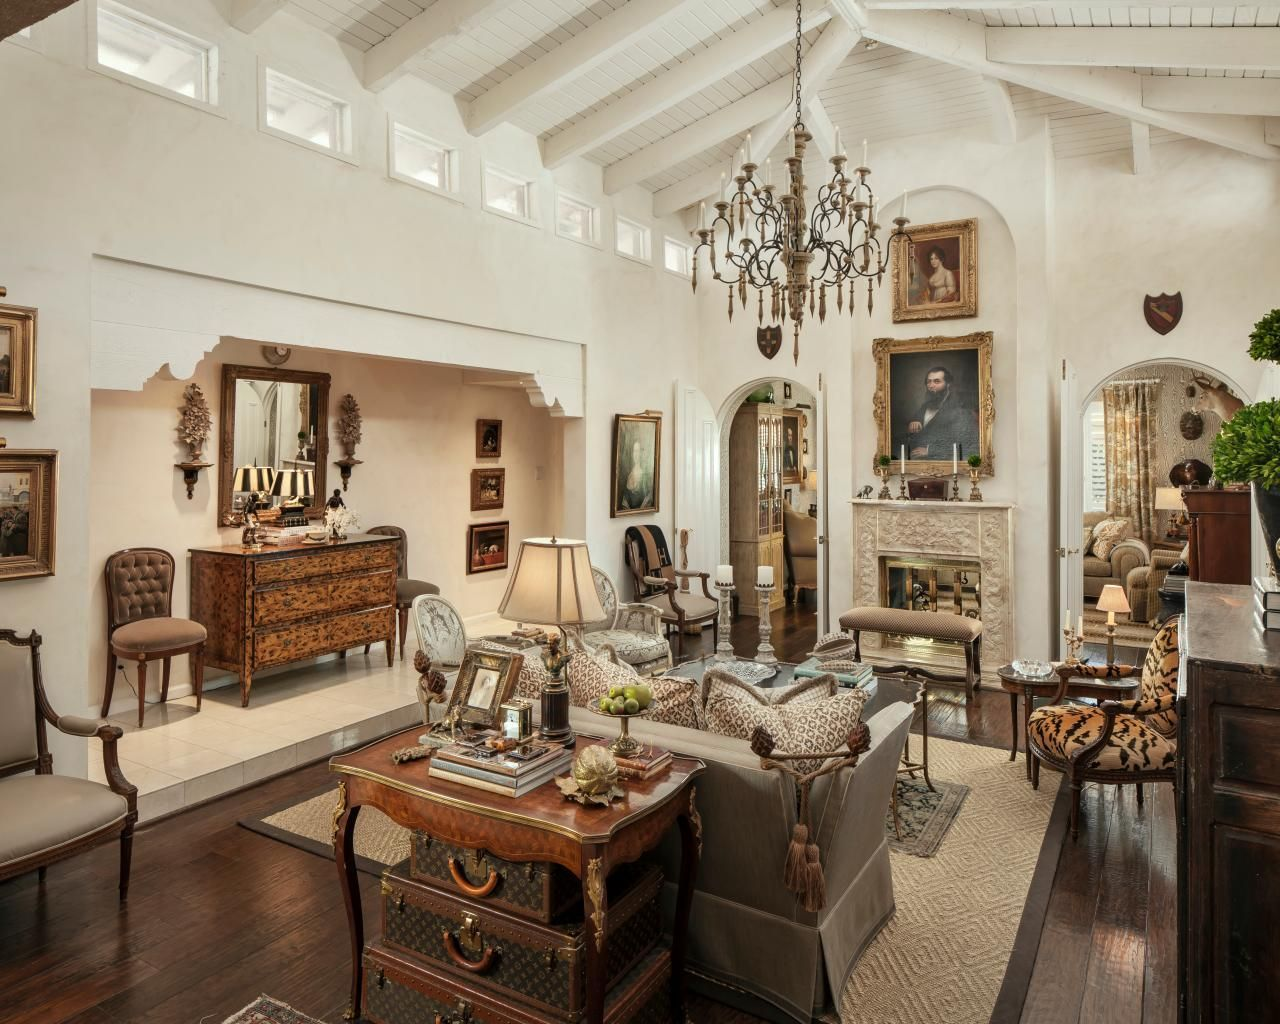 76 French Country Living Room Ideas That Will Delight You | French ...